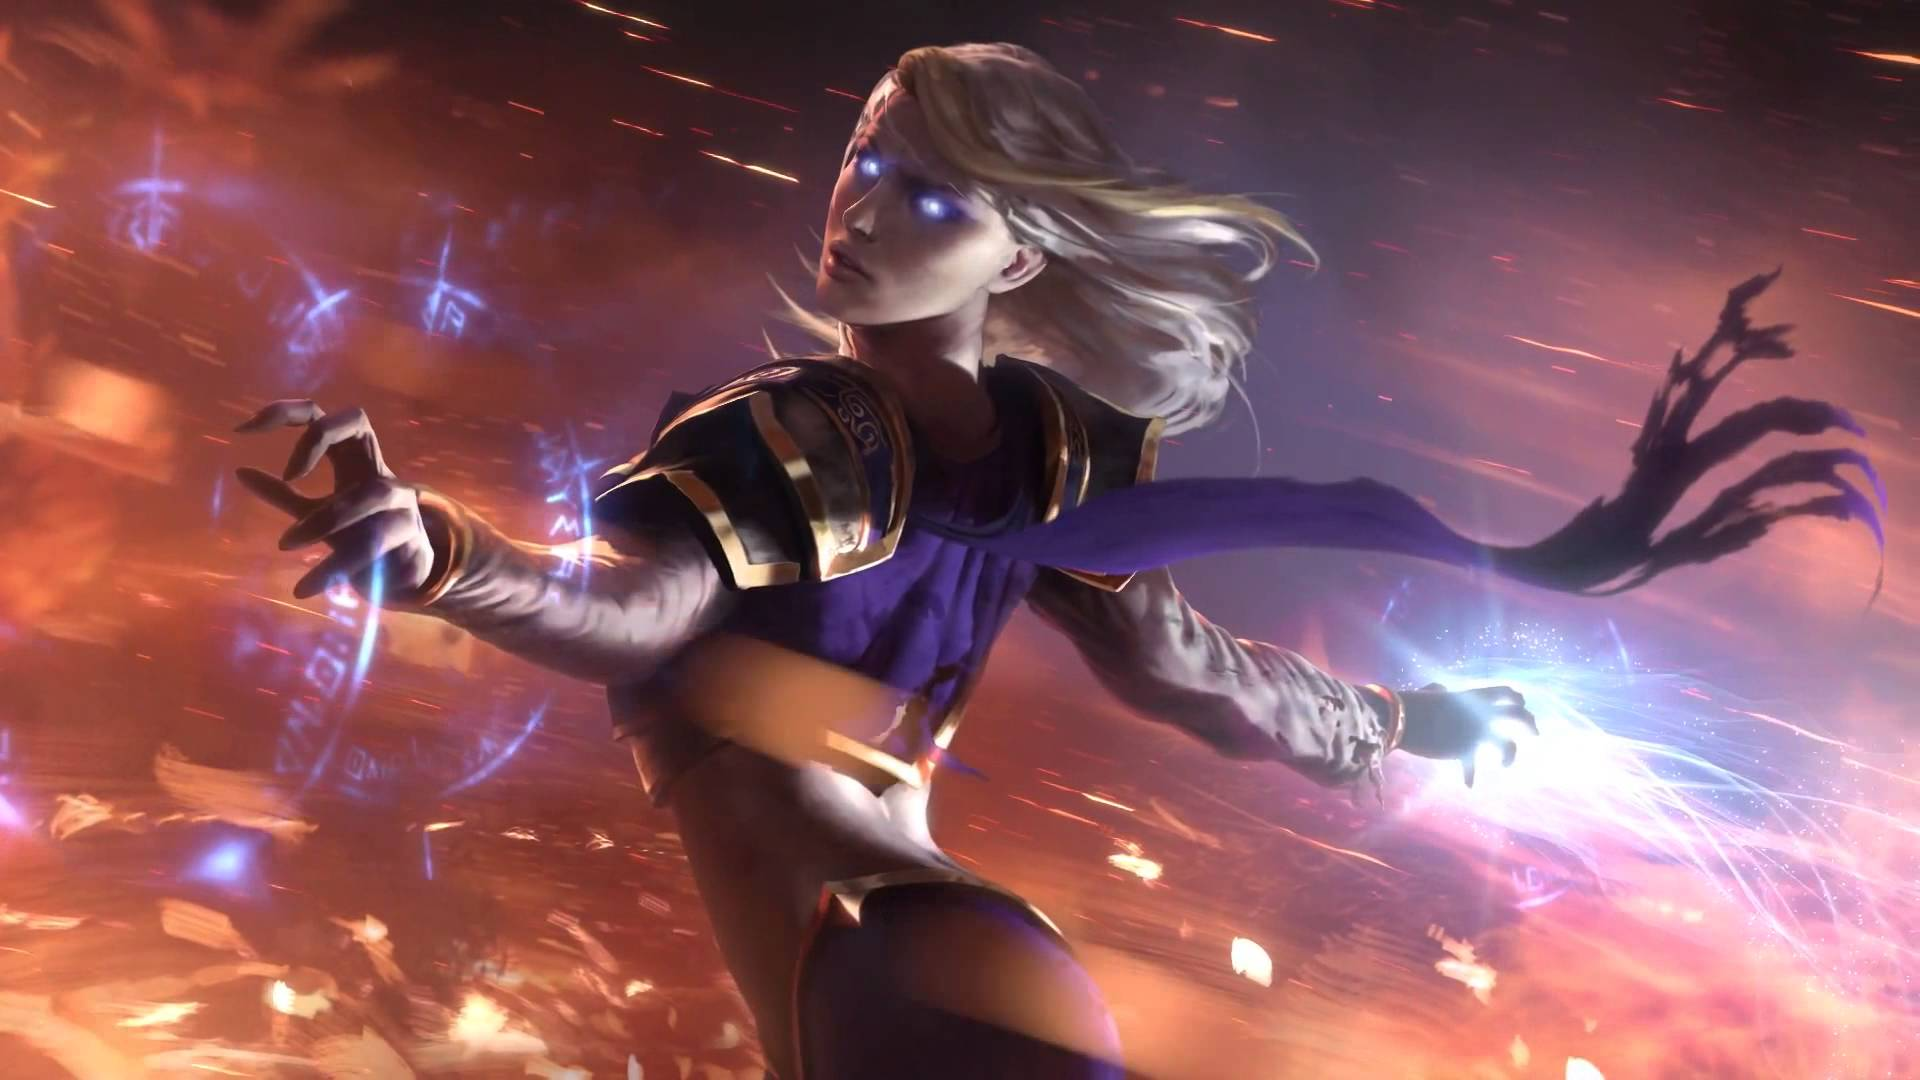 Hearthstone: Jaina Proudmoore Background